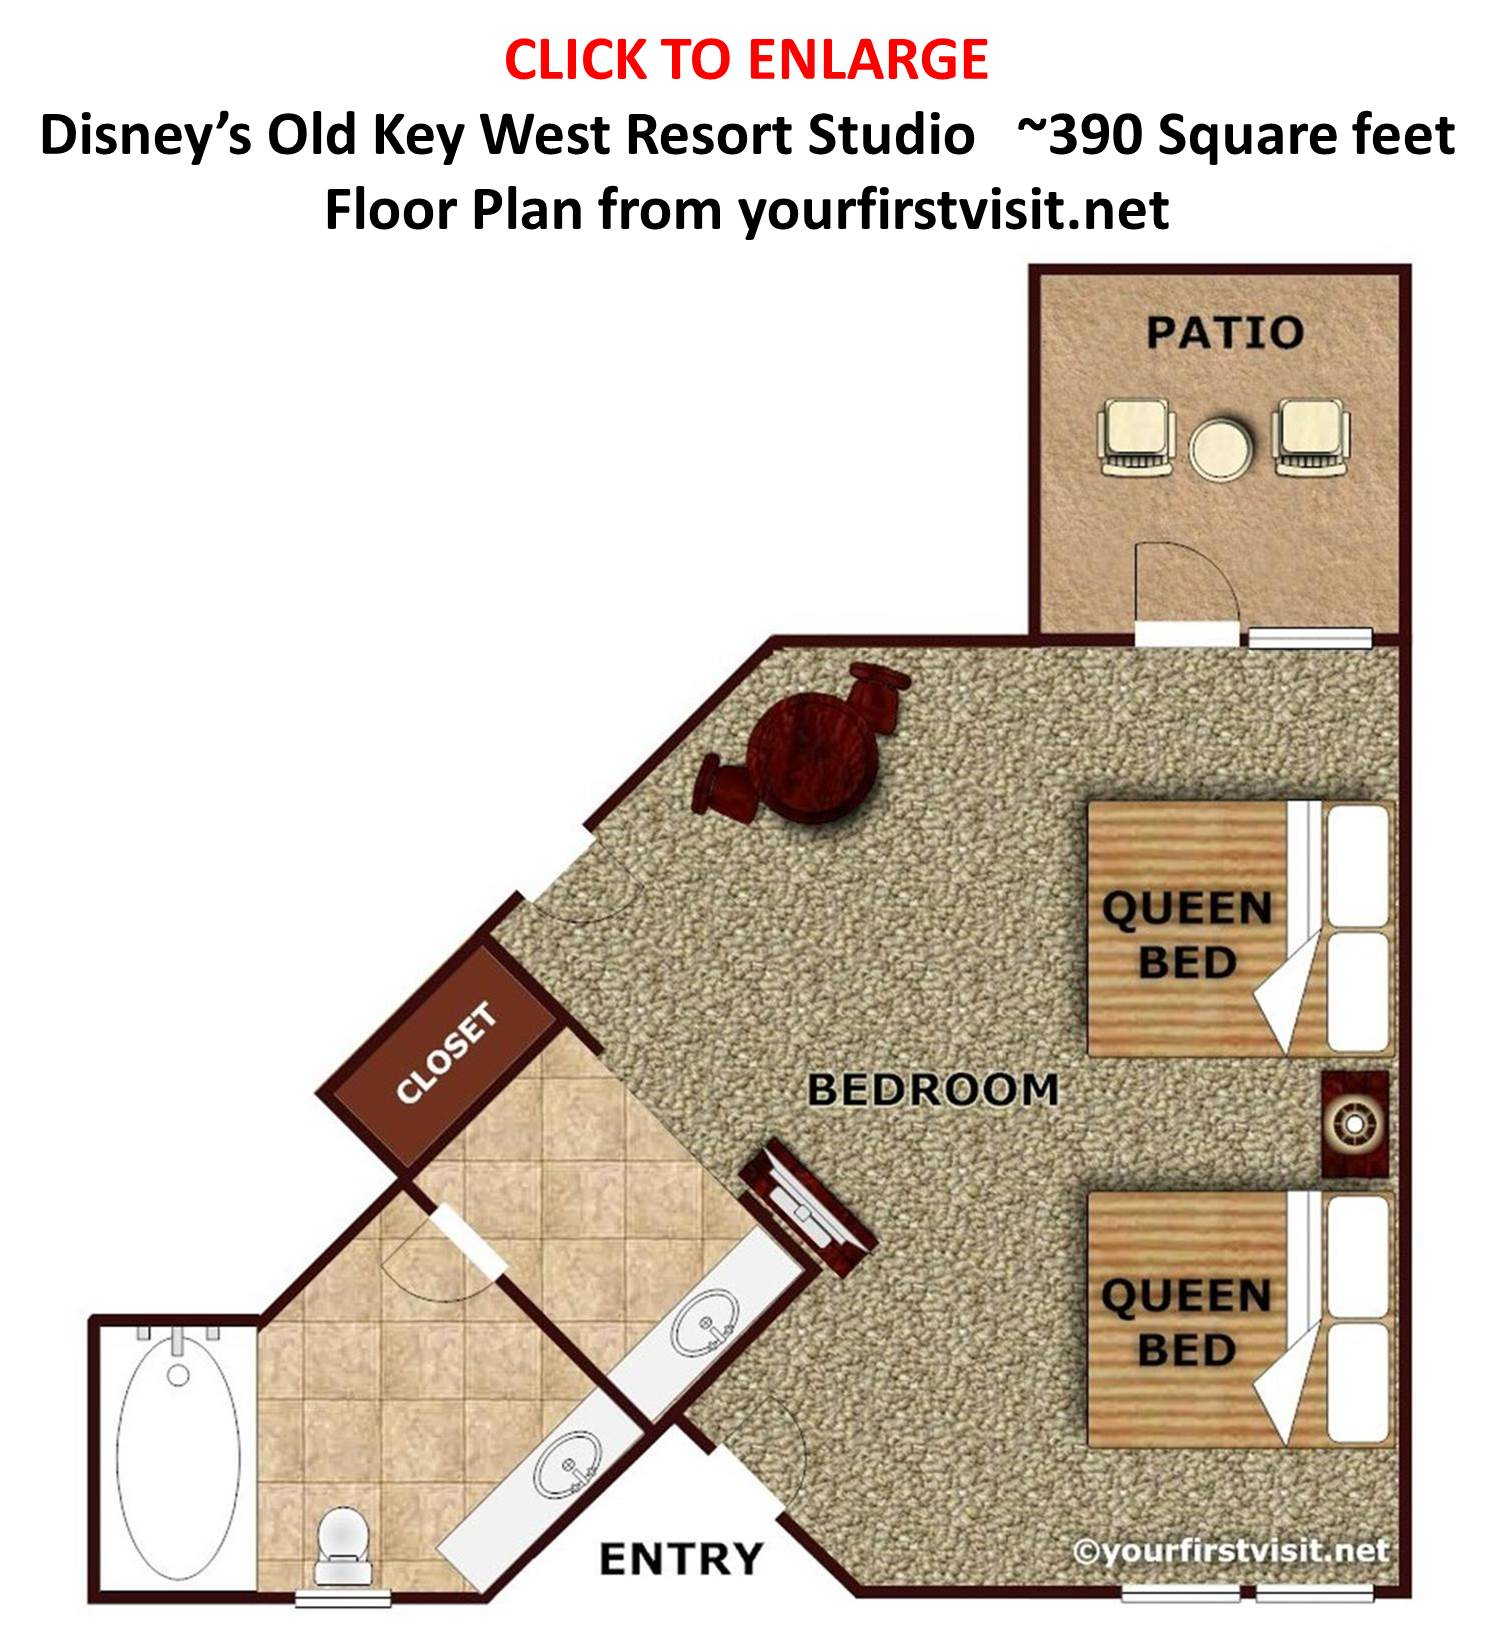 Studio Floor Plan Disney's Old Key West Resort from yourfirstvisit.net